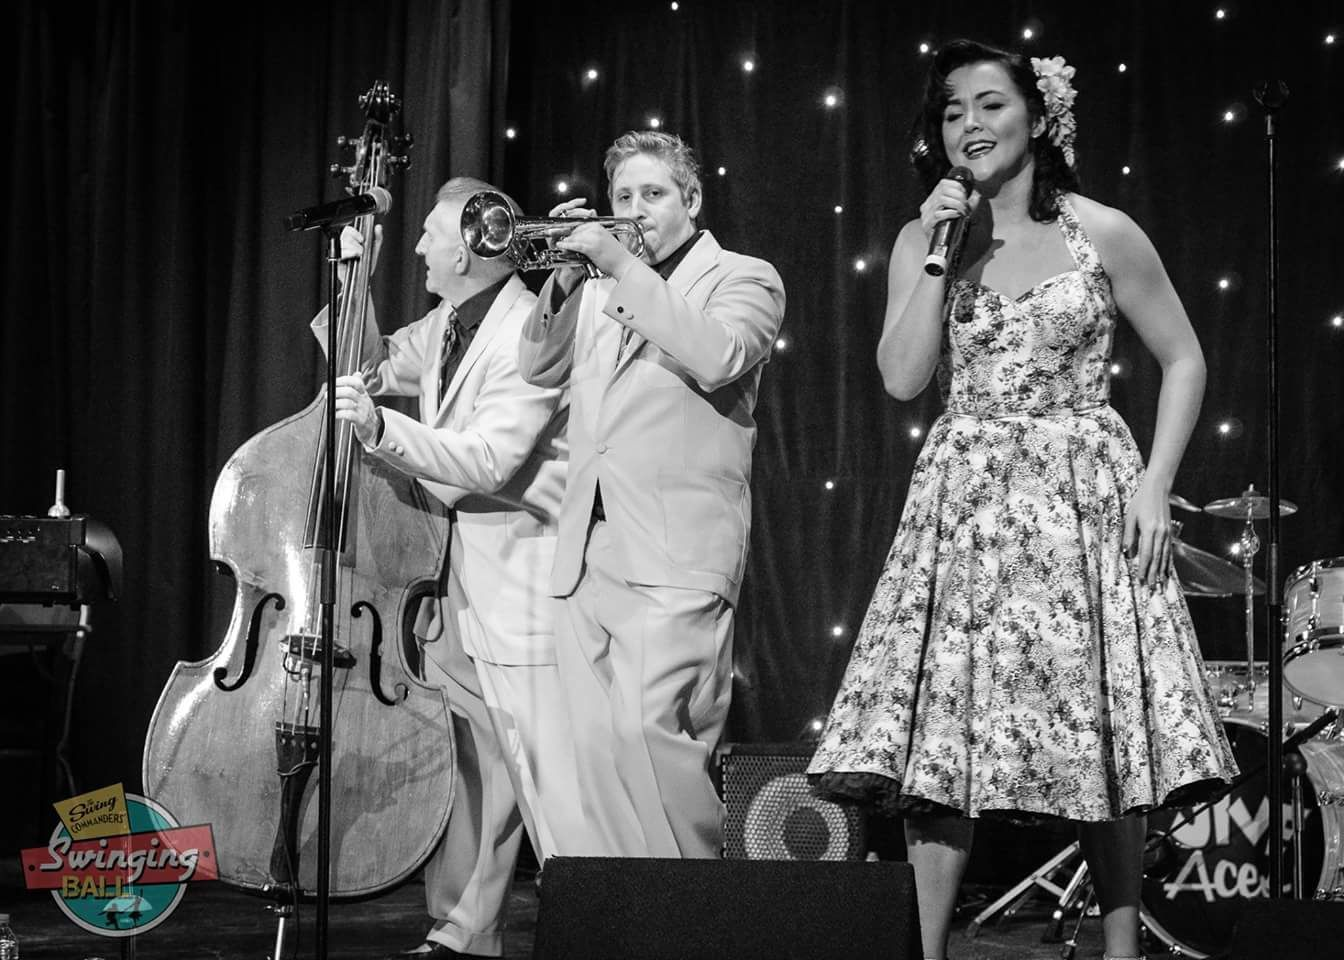 AMY BAKER & THE SWING BEATS